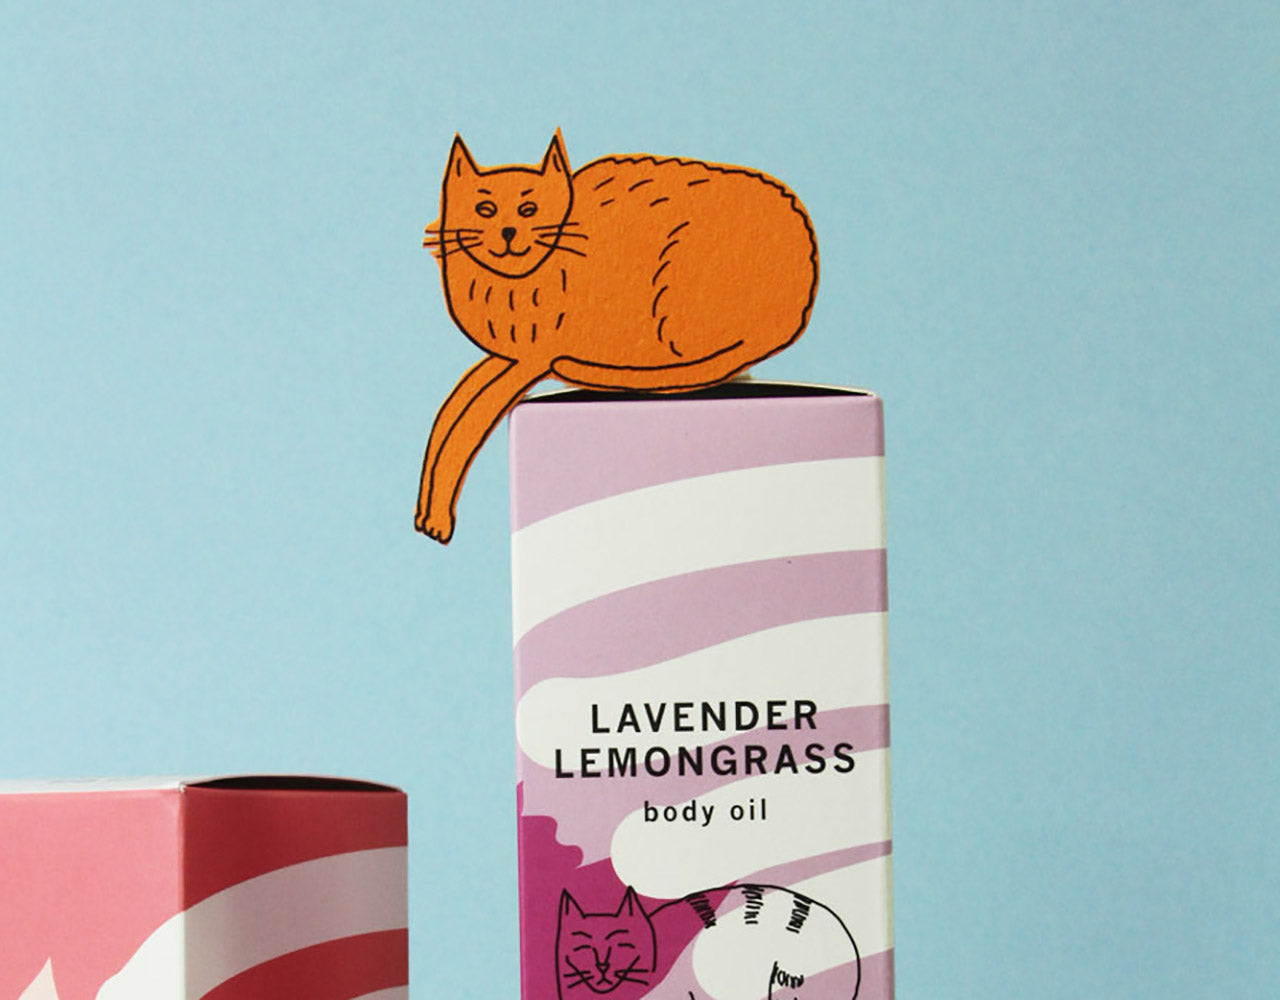 hand-drawn orange paper cat cutout on top of a box of Meow Meow Tweet Lavender Lemongrass body oil against a light blue background